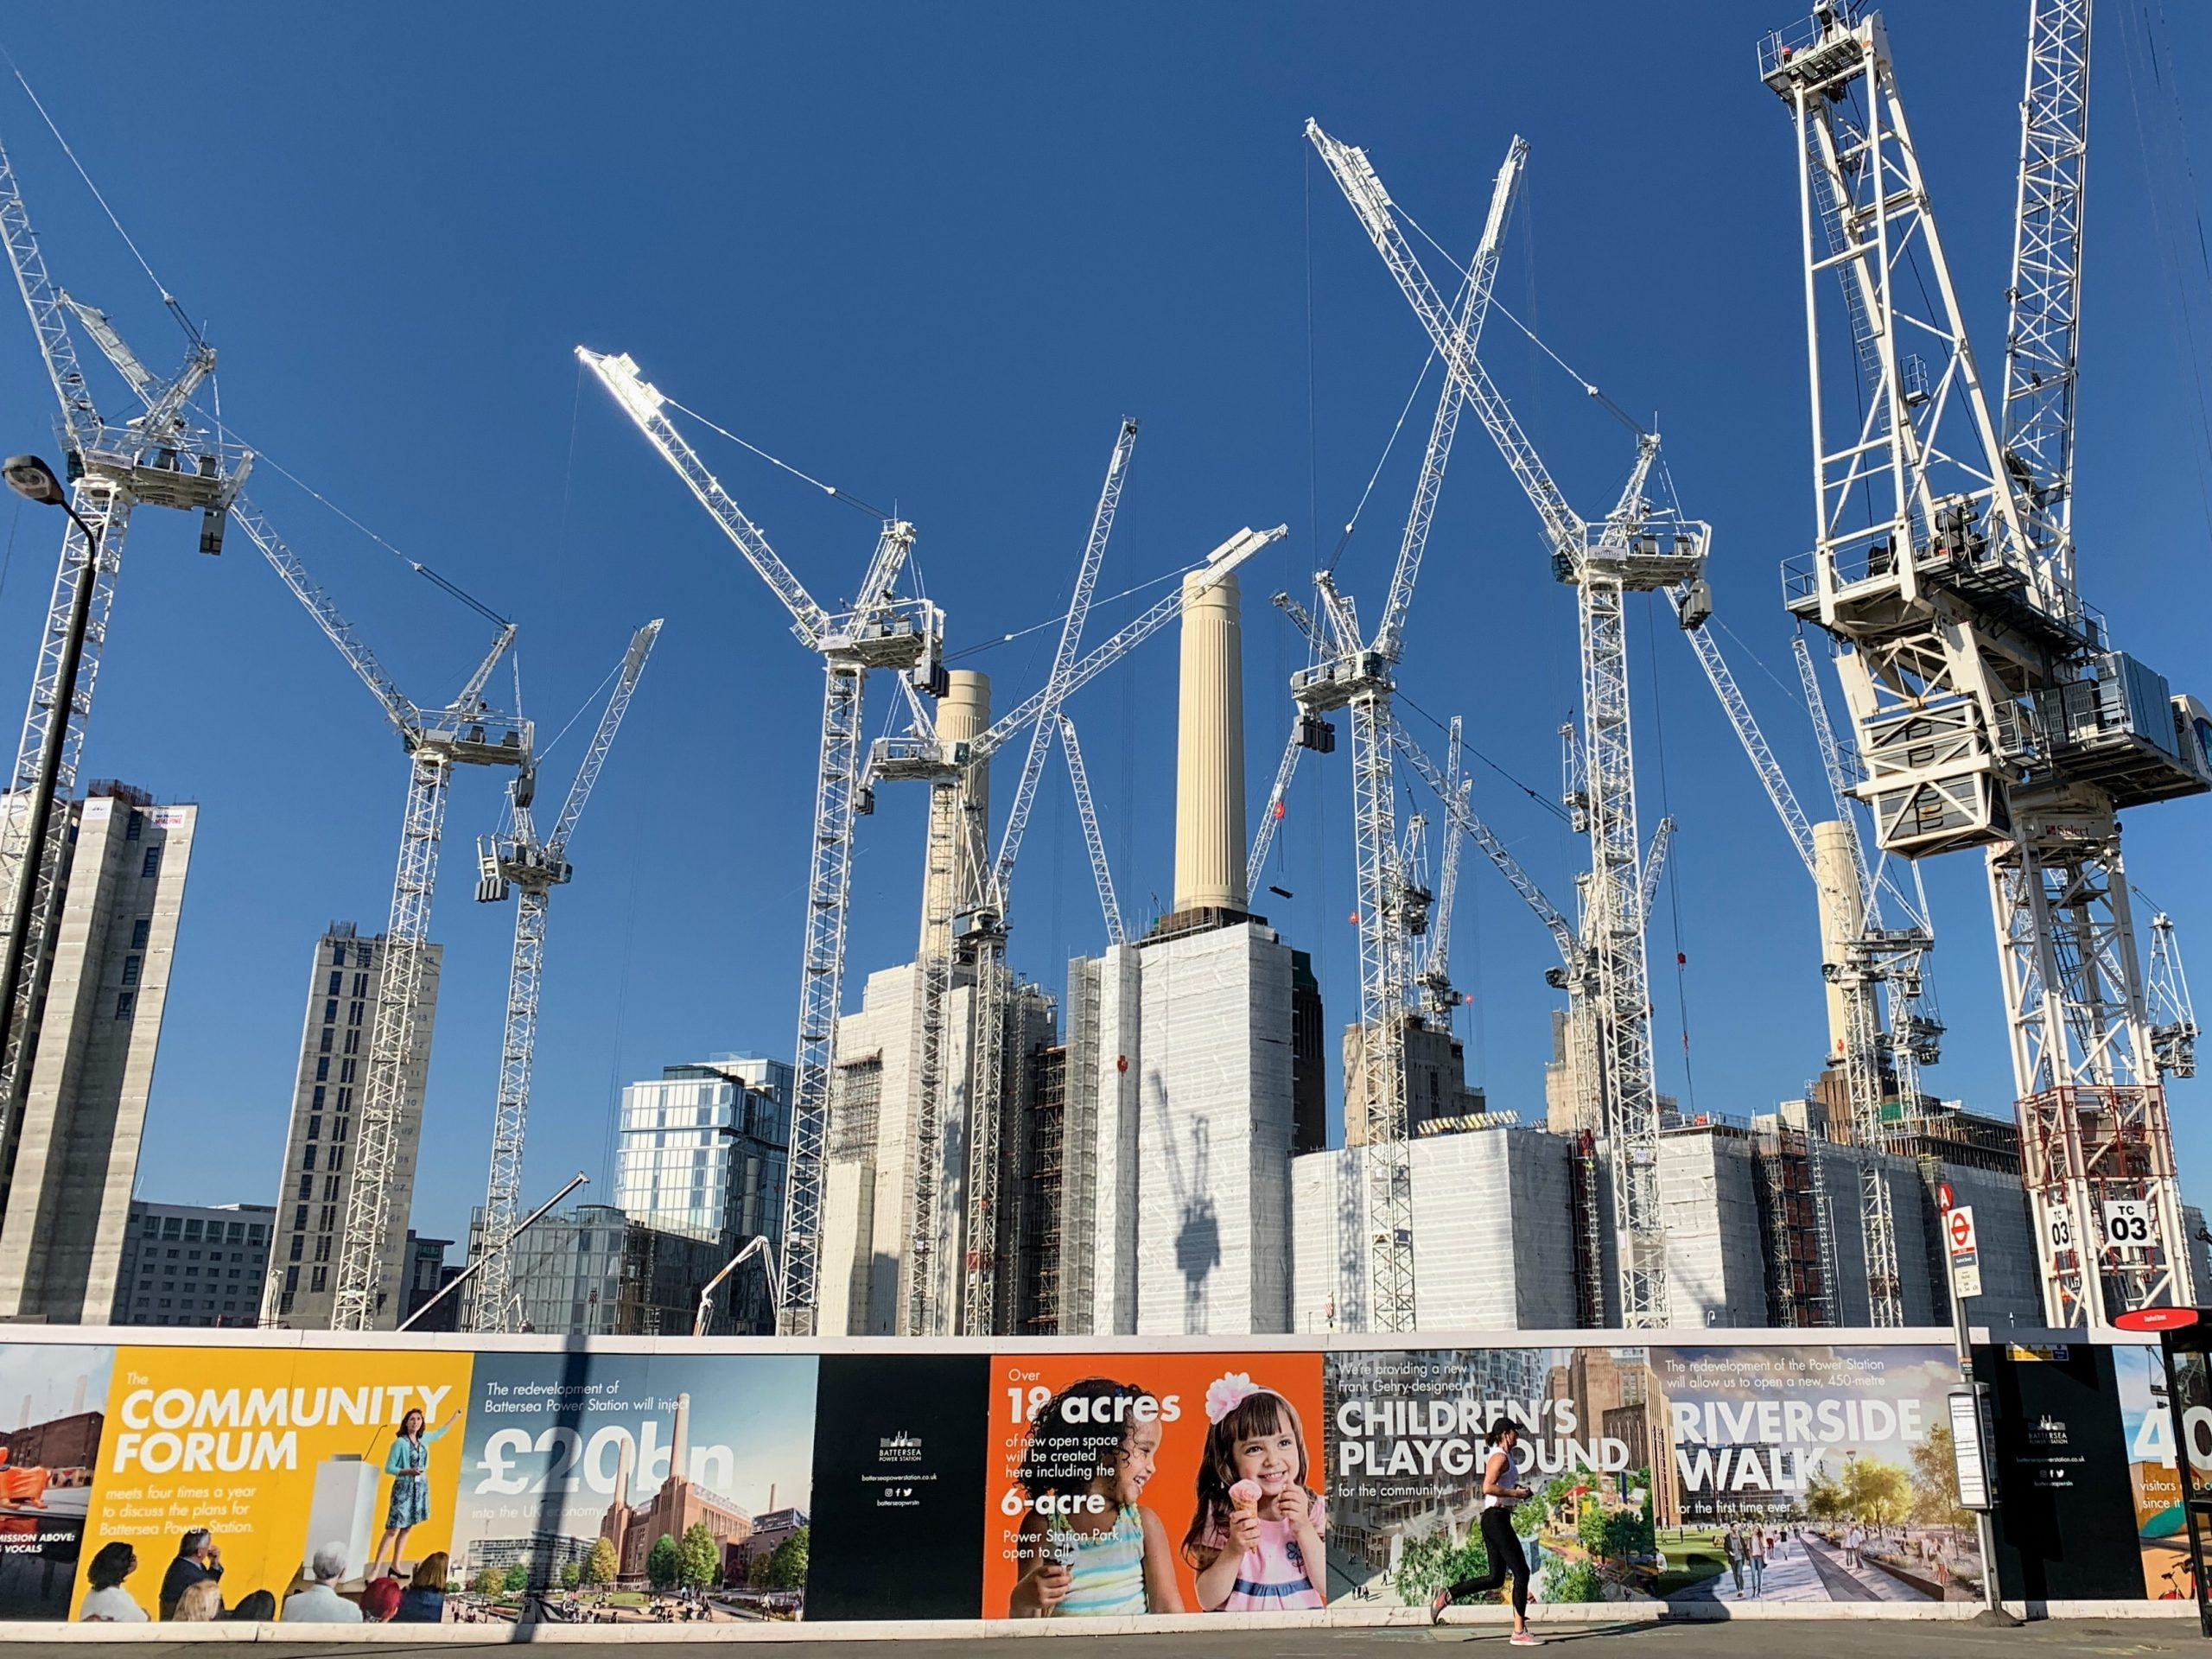 Skyline of construction cranes